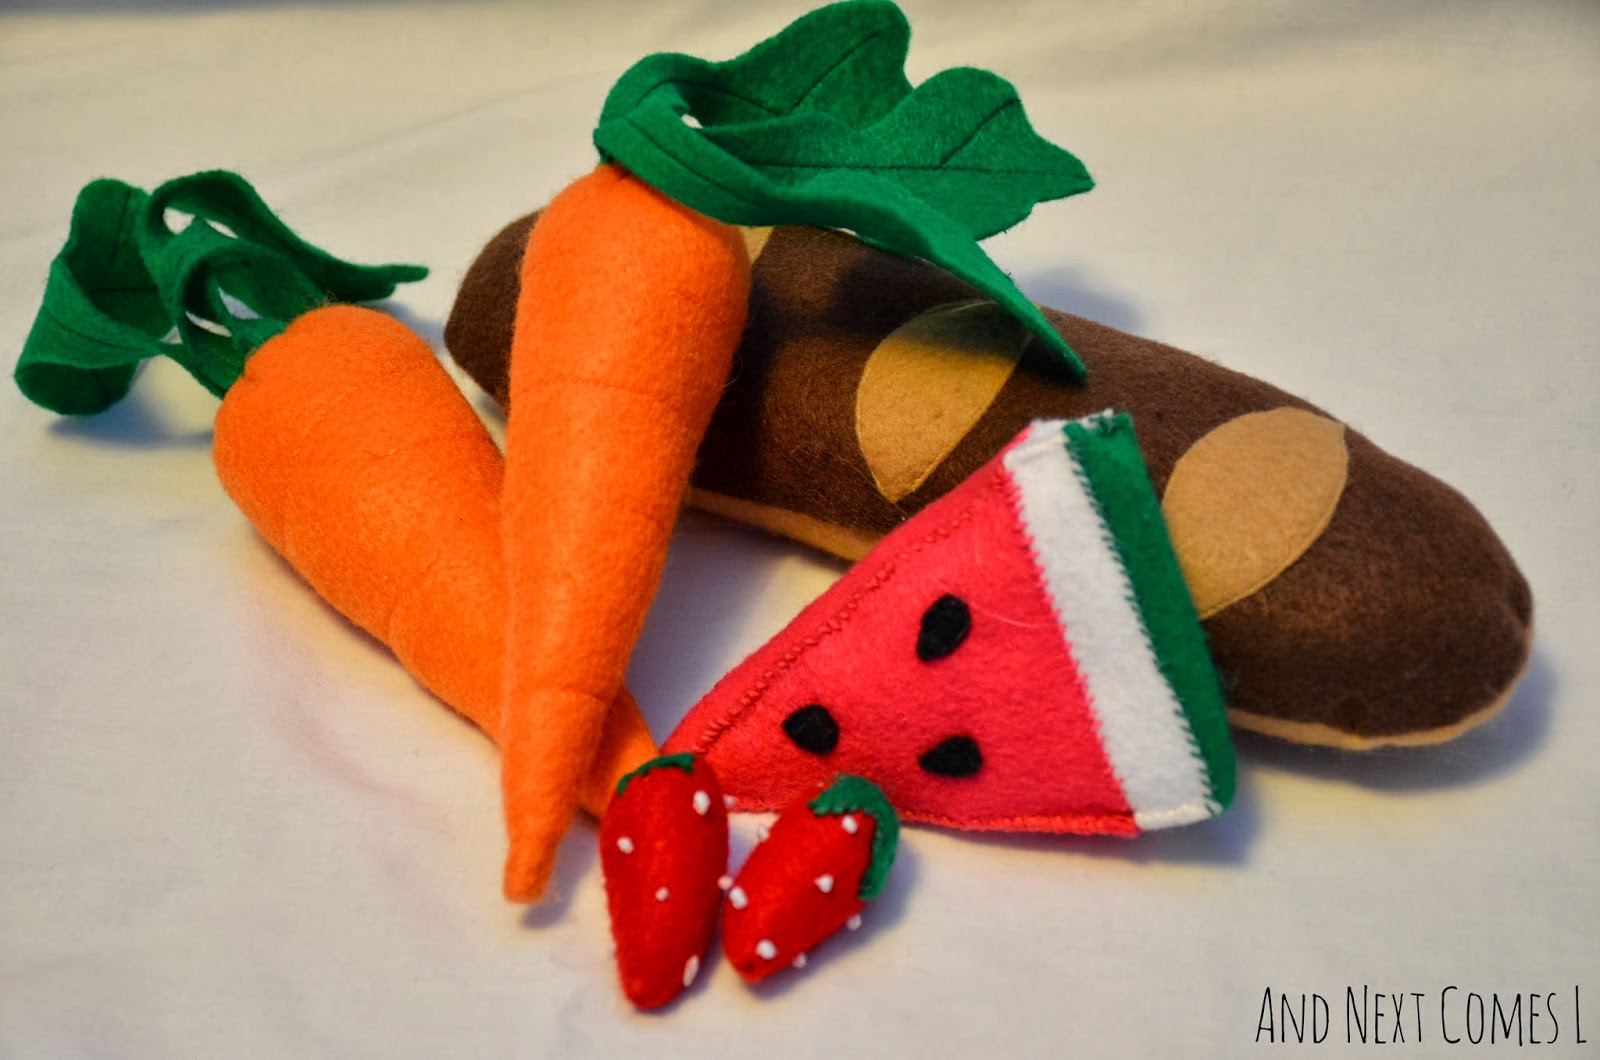 Felt play food: bread, fruit, and vegetables - includes links to tutorials from And Next Comes L